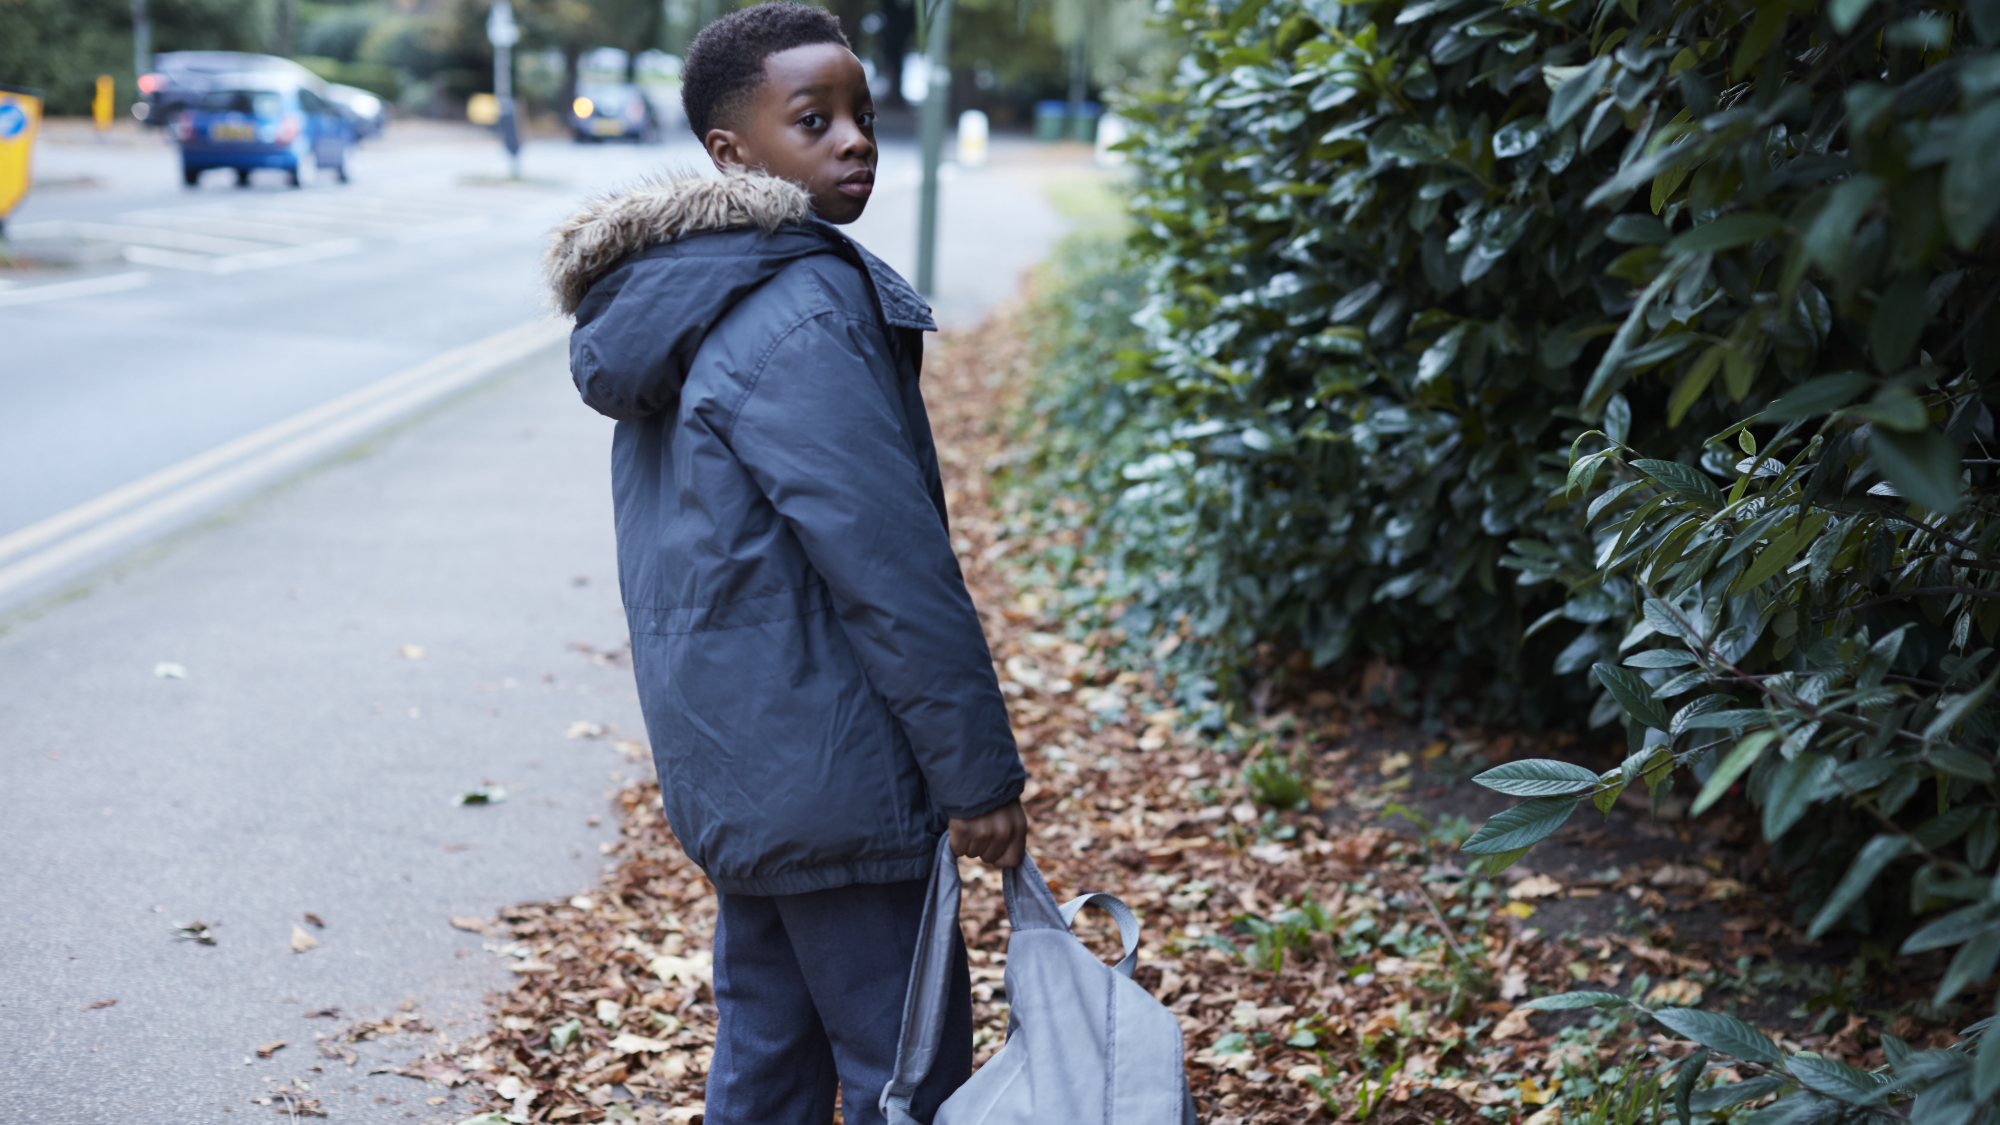 Young boy standing outside in street wearing coat